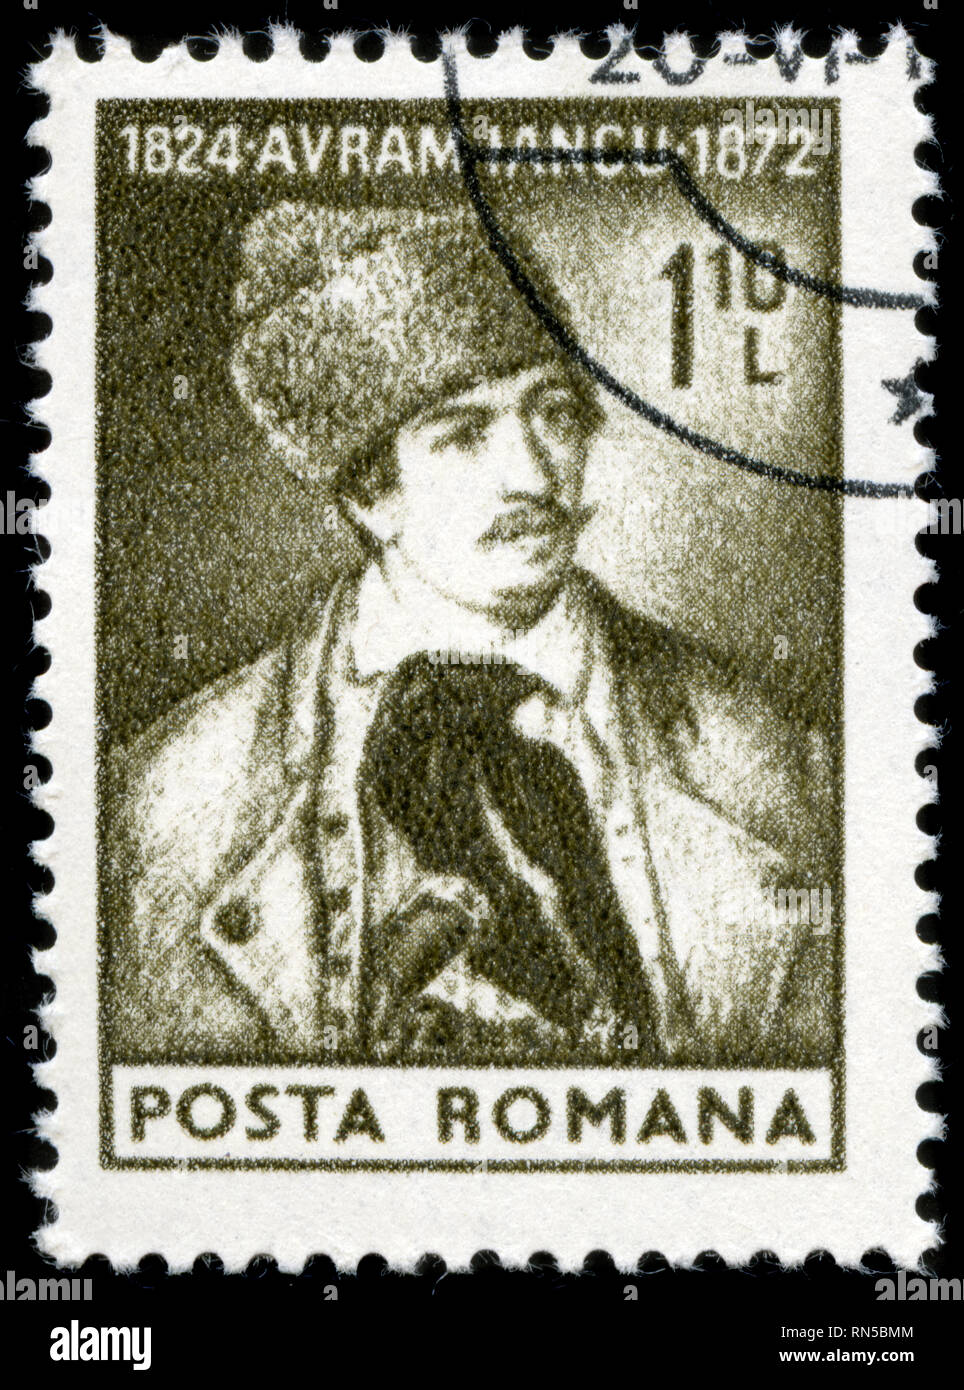 Postage stamp from Romania in the Anniversaries series issued in 1974 - Stock Image